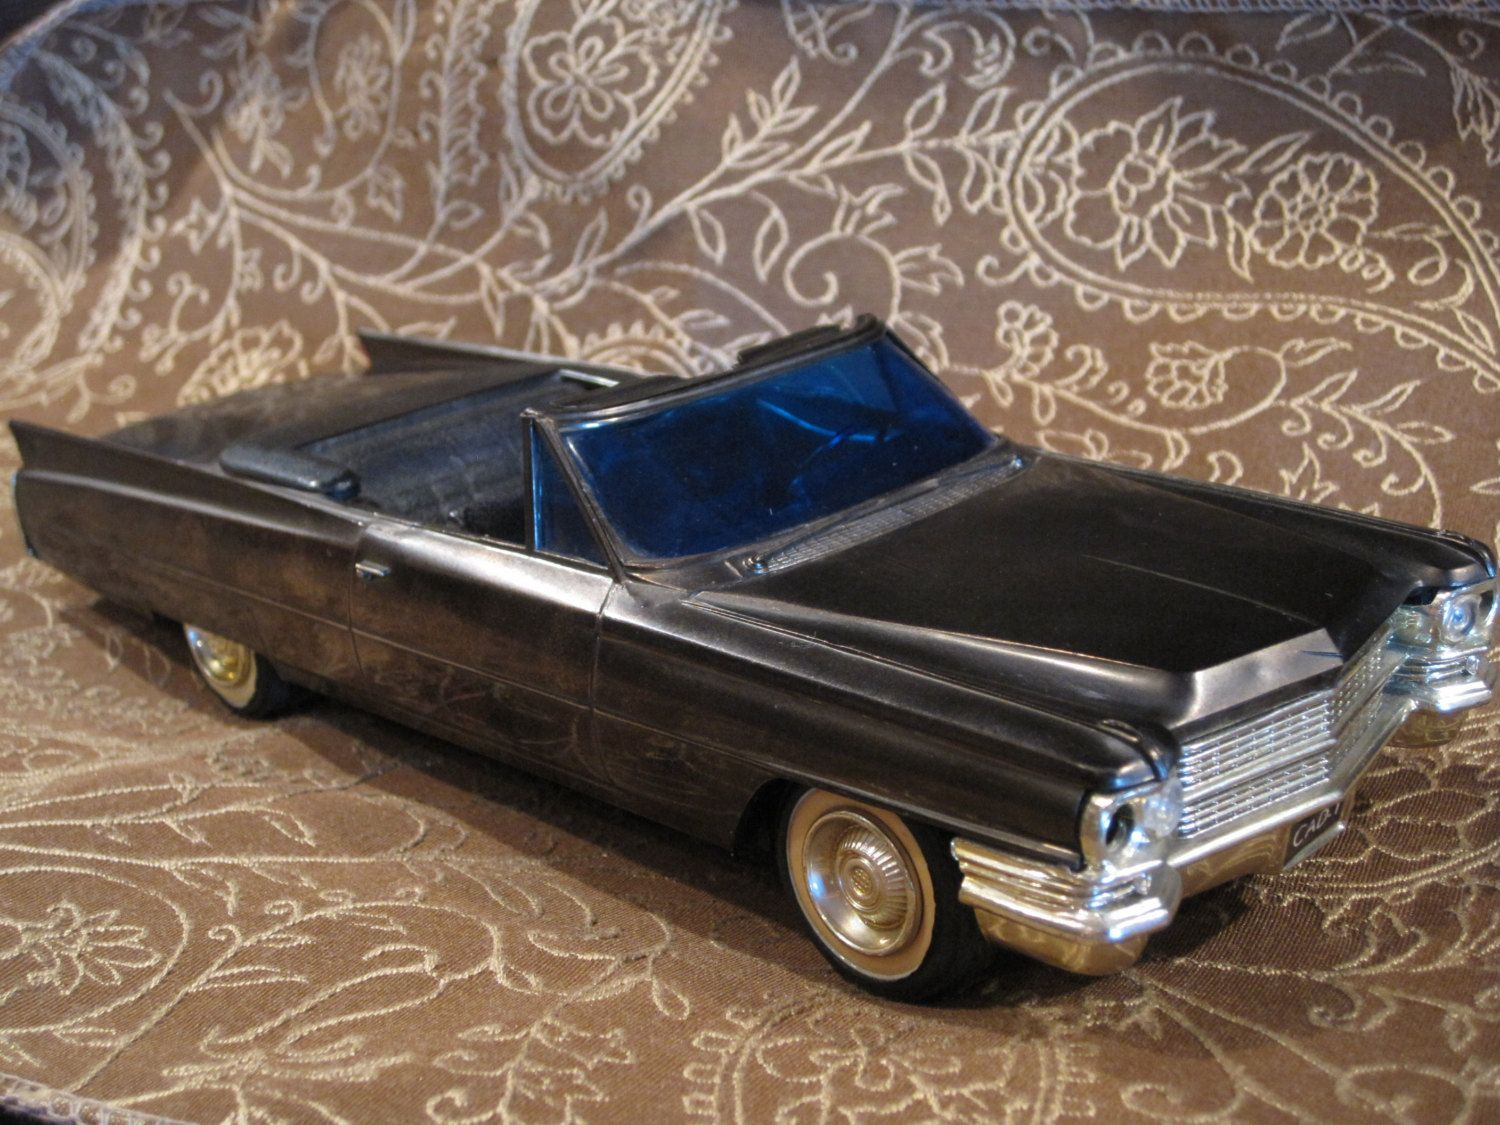 remote control car toys from transistor vintage toy    car    1963 cadillac radio    transistor    radio  vintage toy    car    1963 cadillac radio    transistor    radio